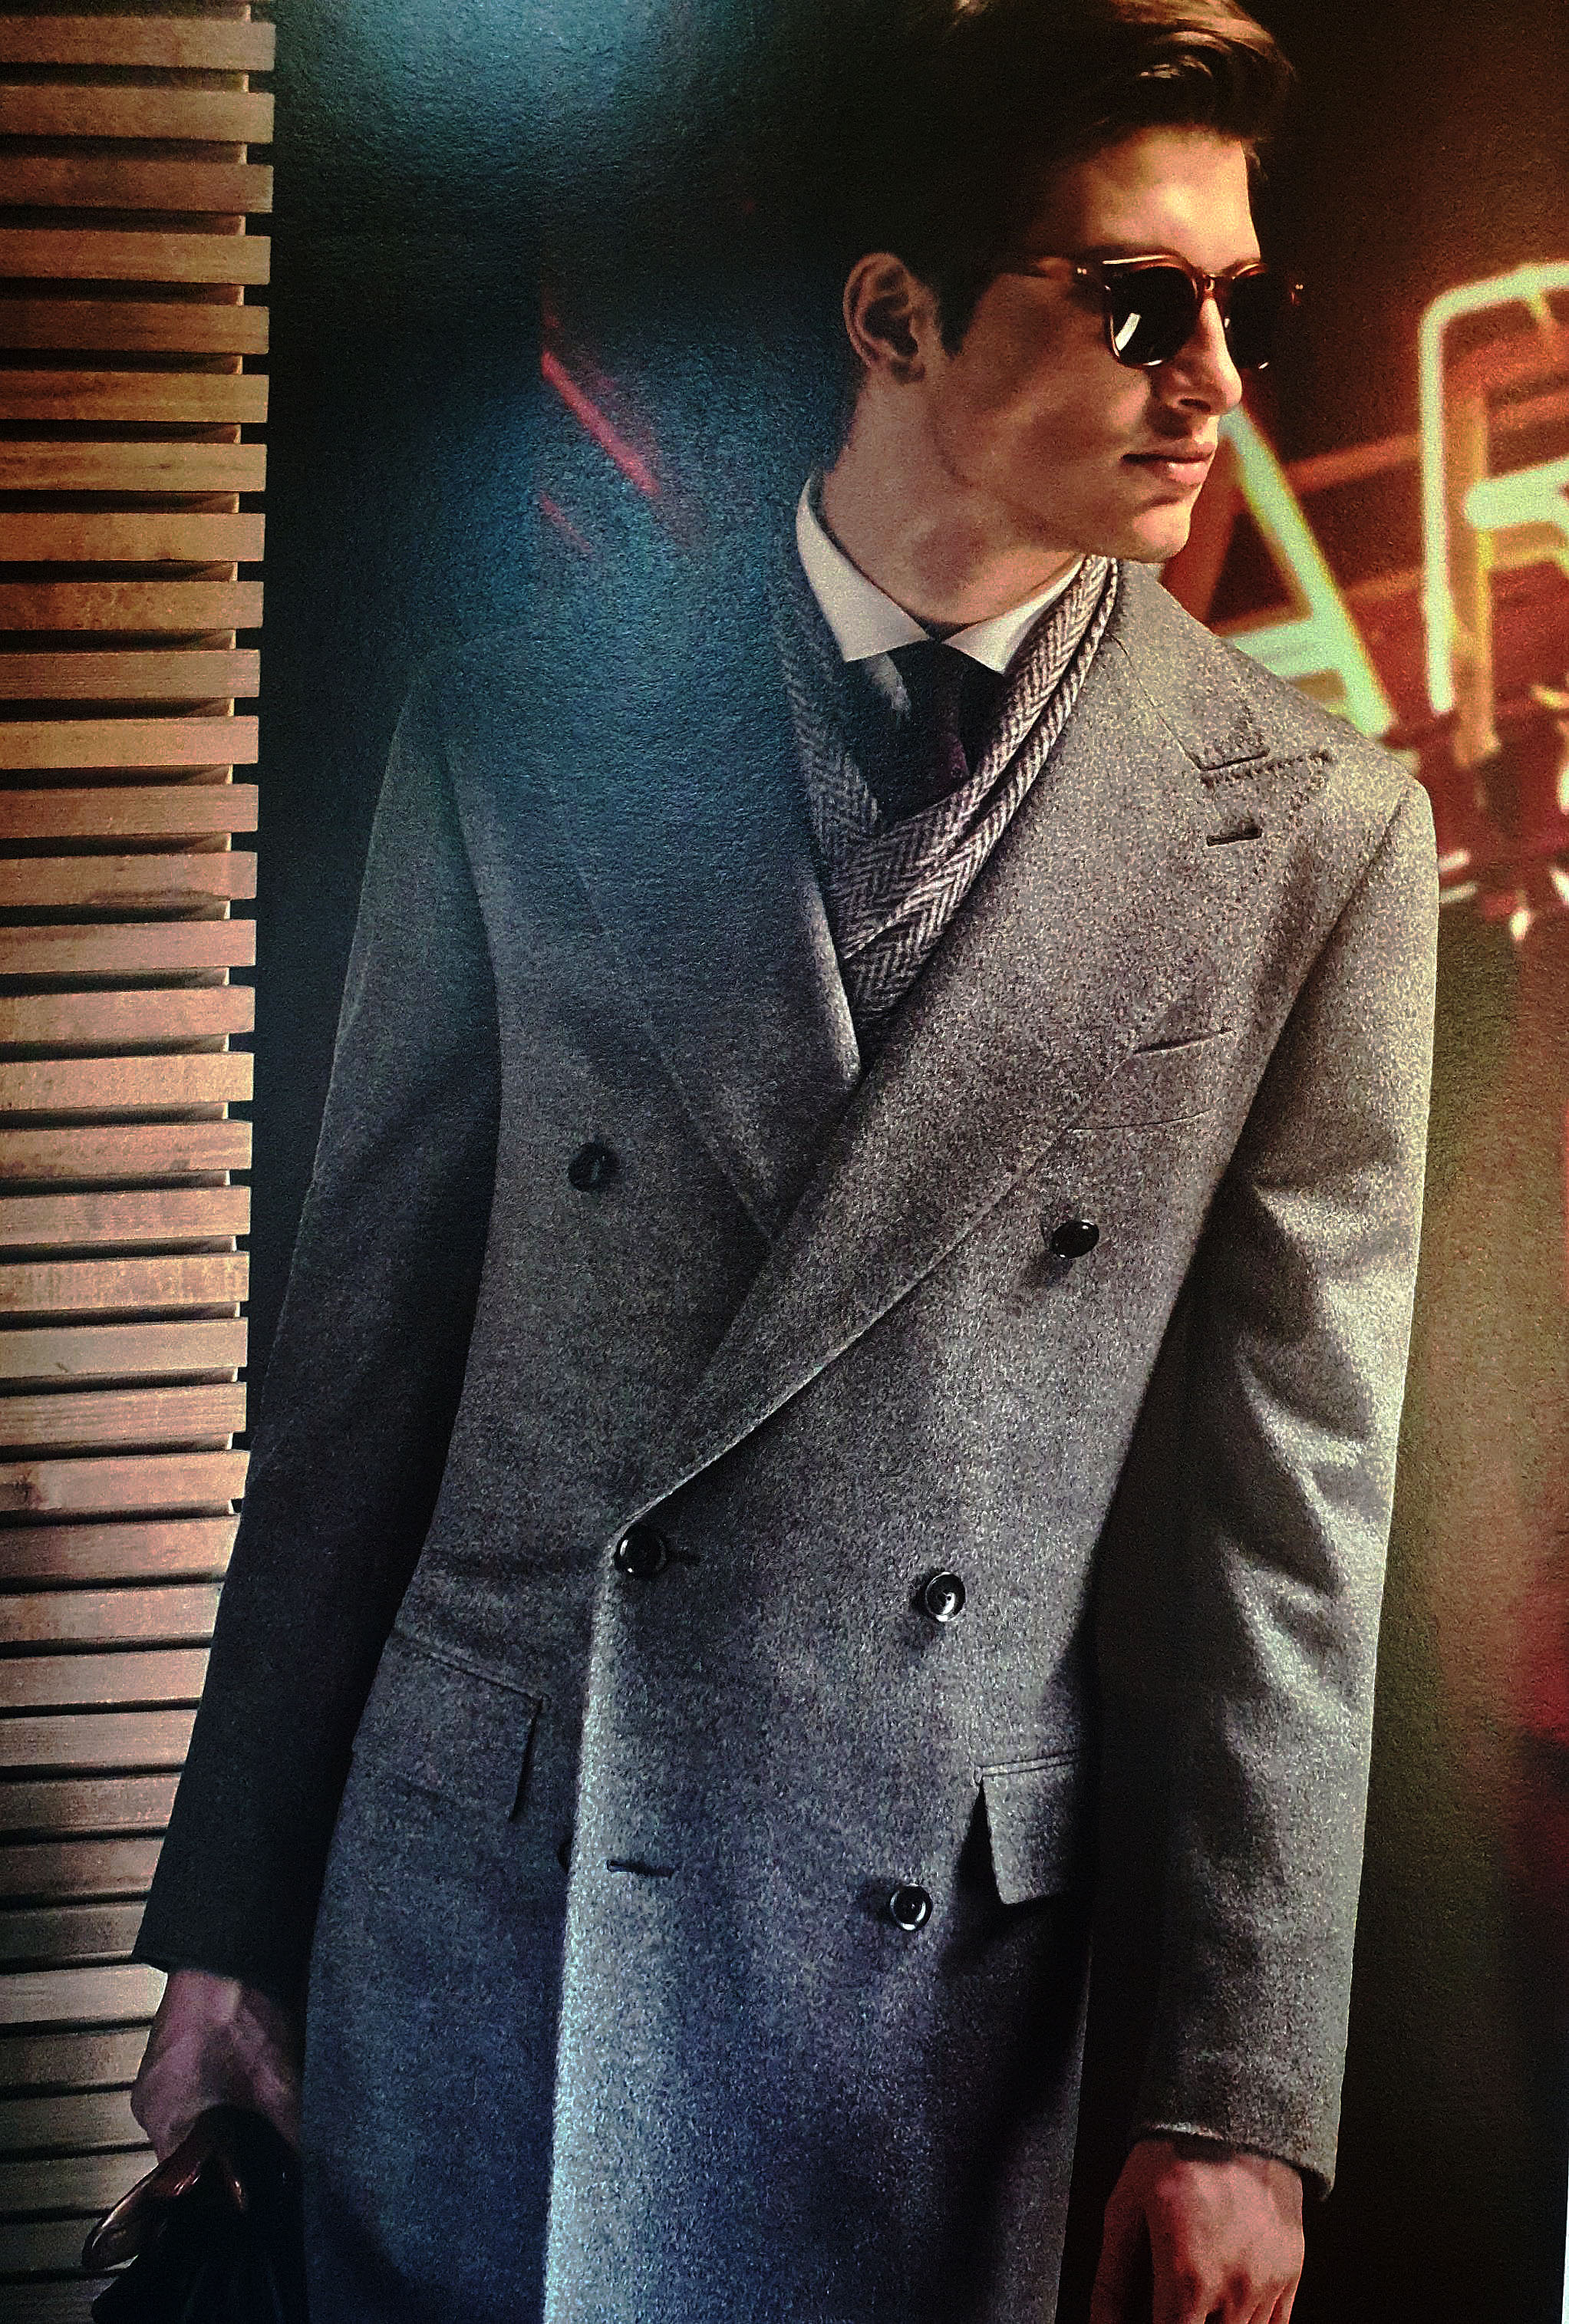 WOLF   STYLBIELLA  Grey Overcoat   Made Suits   Tailor made overcoat   bespoke overcoat   Made to measure overcoat LOOK.jpg